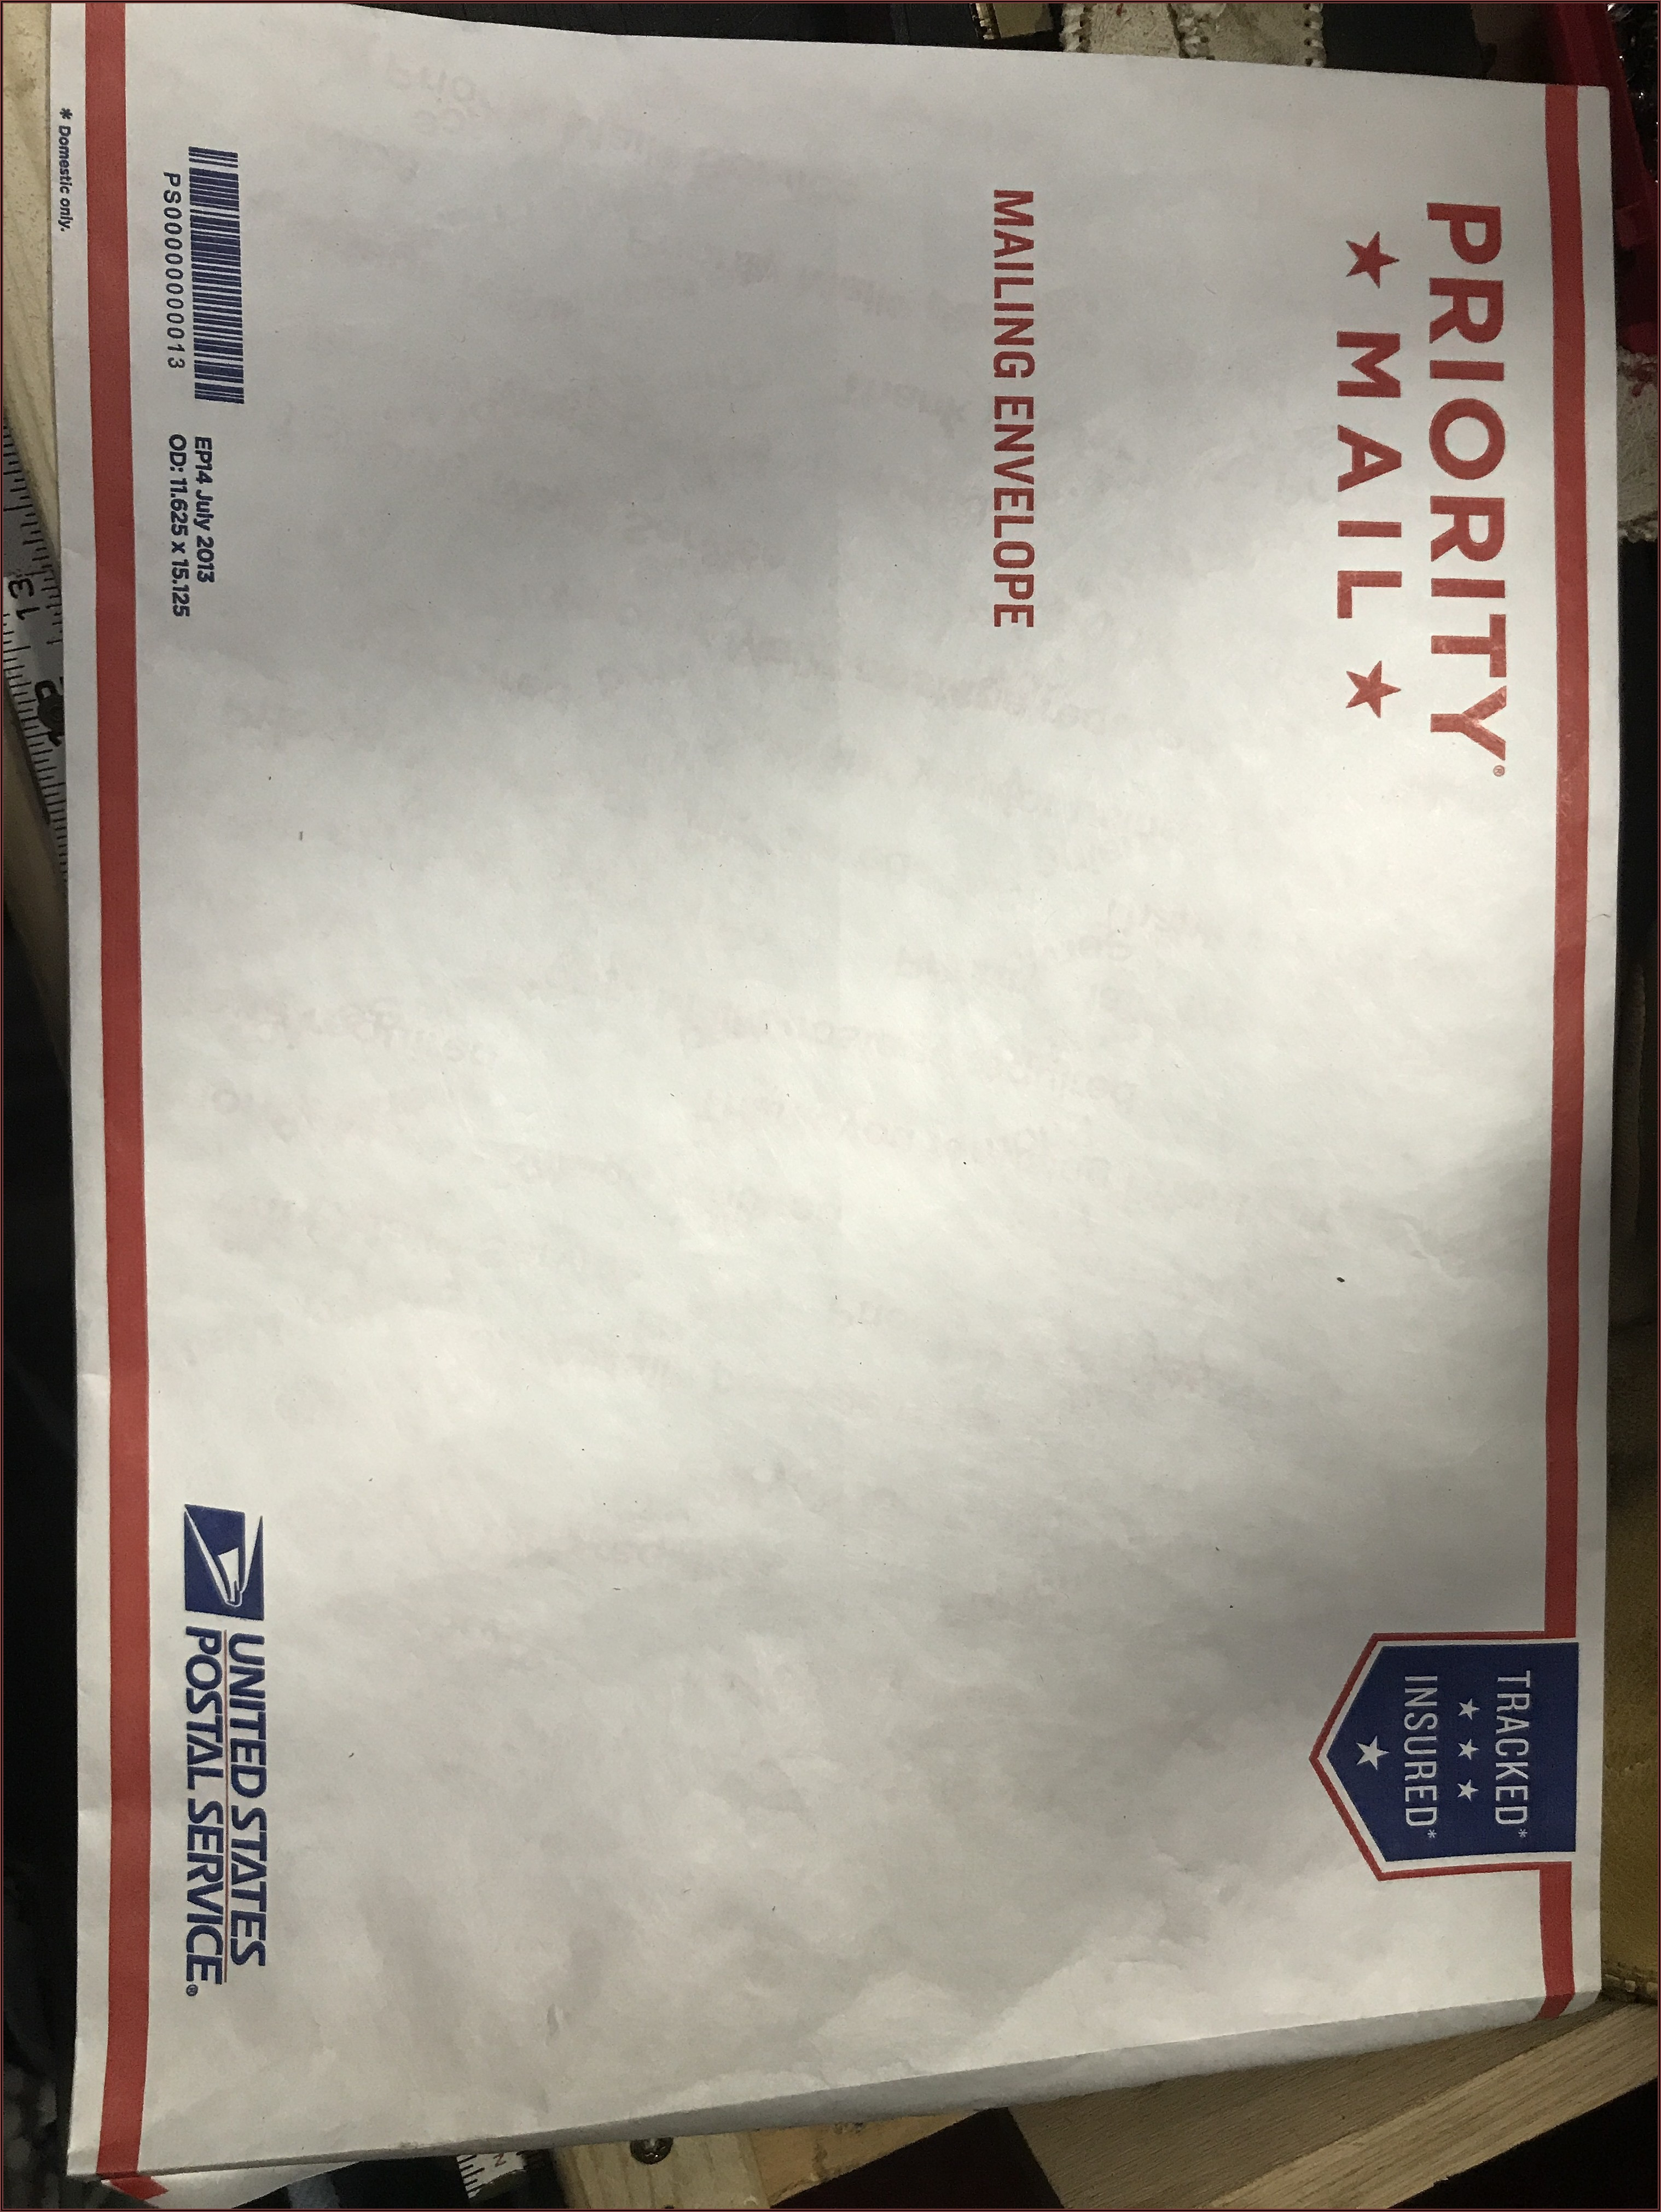 Usps Priority Mail Flat Rate Envelope 11.625 X 15.125